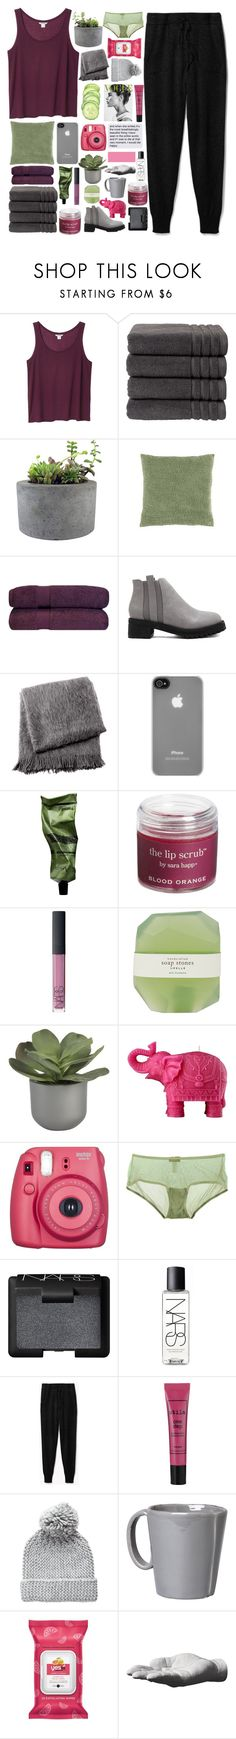 """""""collab with paris"""" by samiikins ❤ liked on Polyvore featuring Monki, Christy, Rough Fusion, From the Road, Incase, Aesop, Sara Happ, NARS Cosmetics, Pelle and Crate and Barrel"""